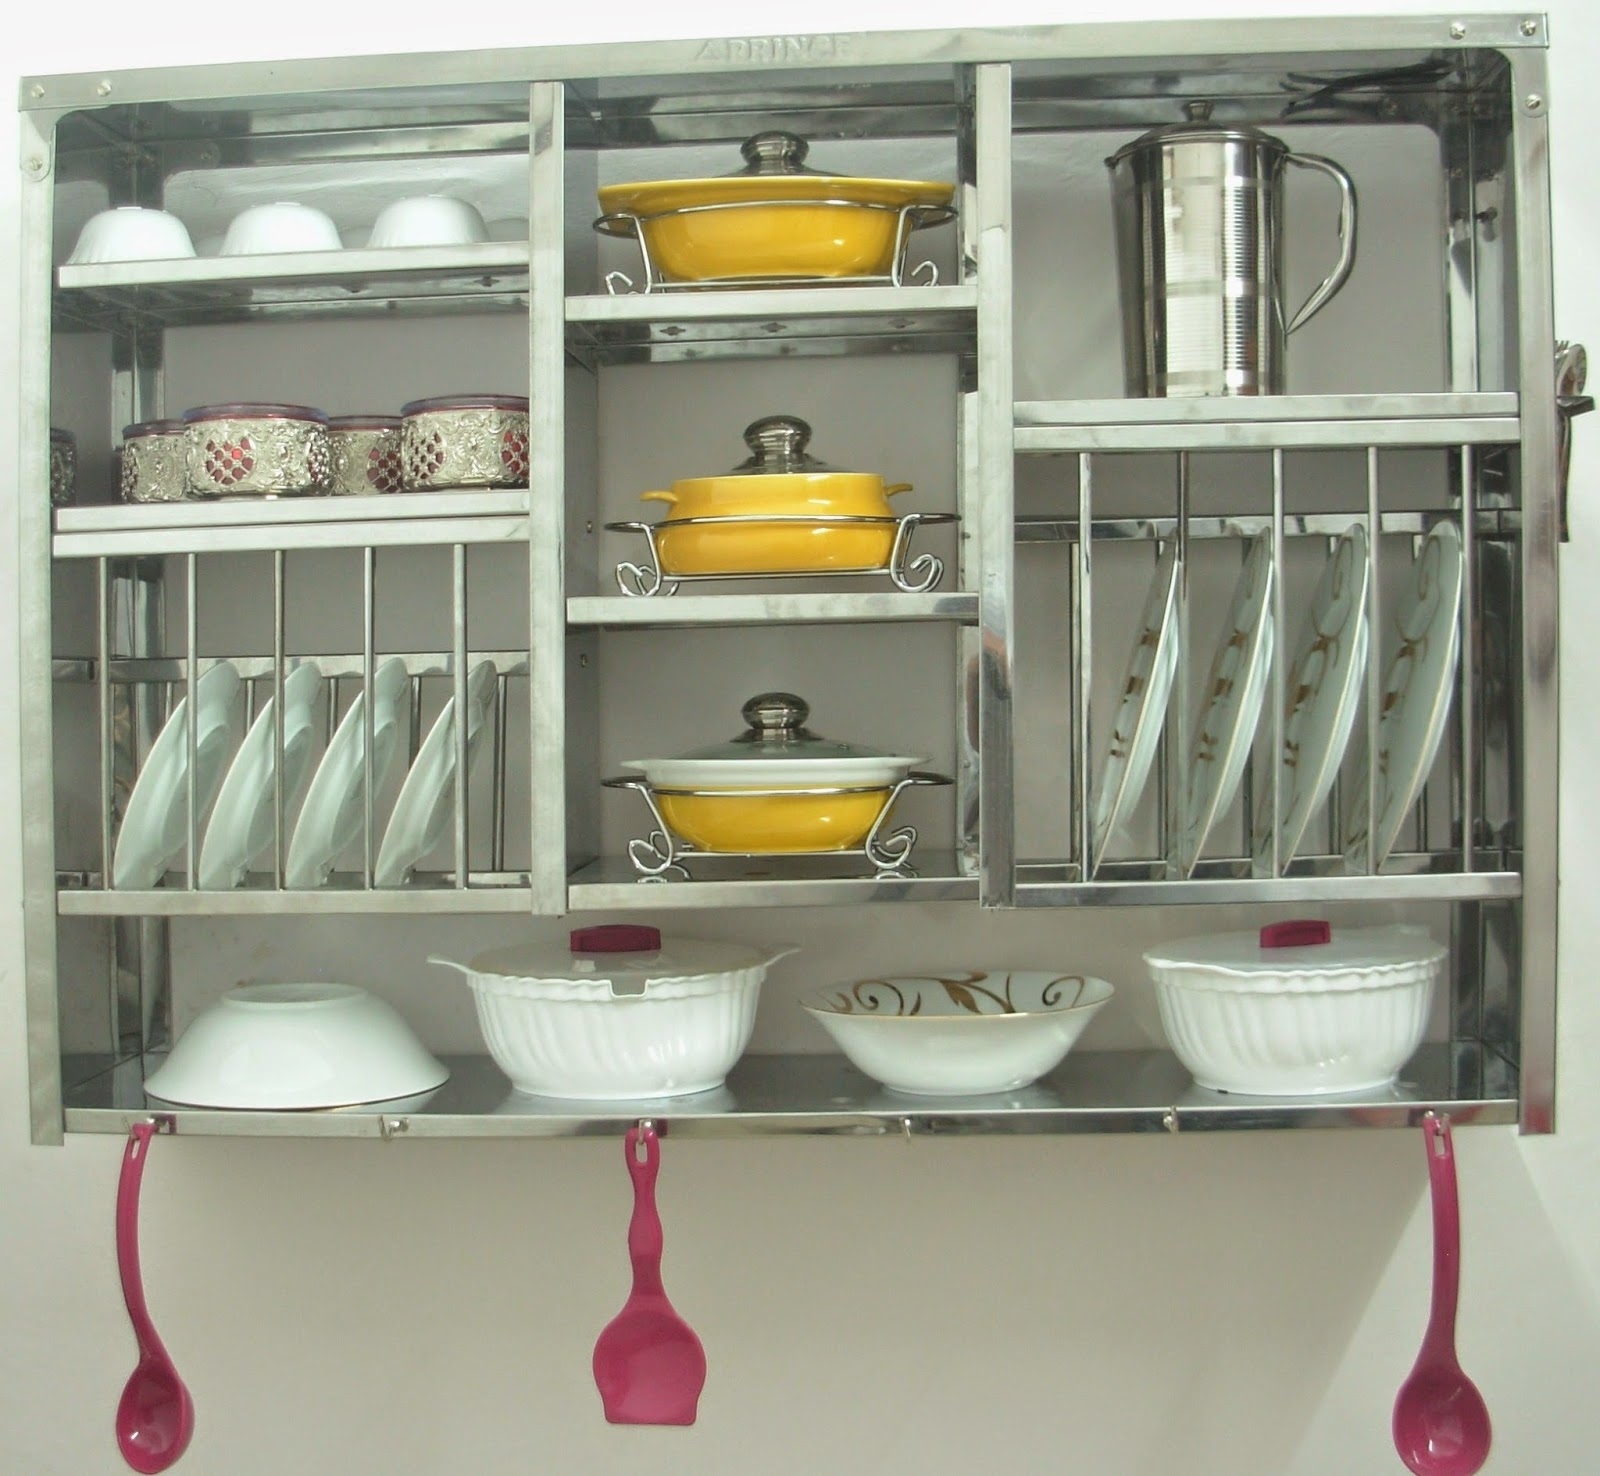 Kitchen Cabinets Plate Rack: Stainless Steel Kitchen Plate Rack